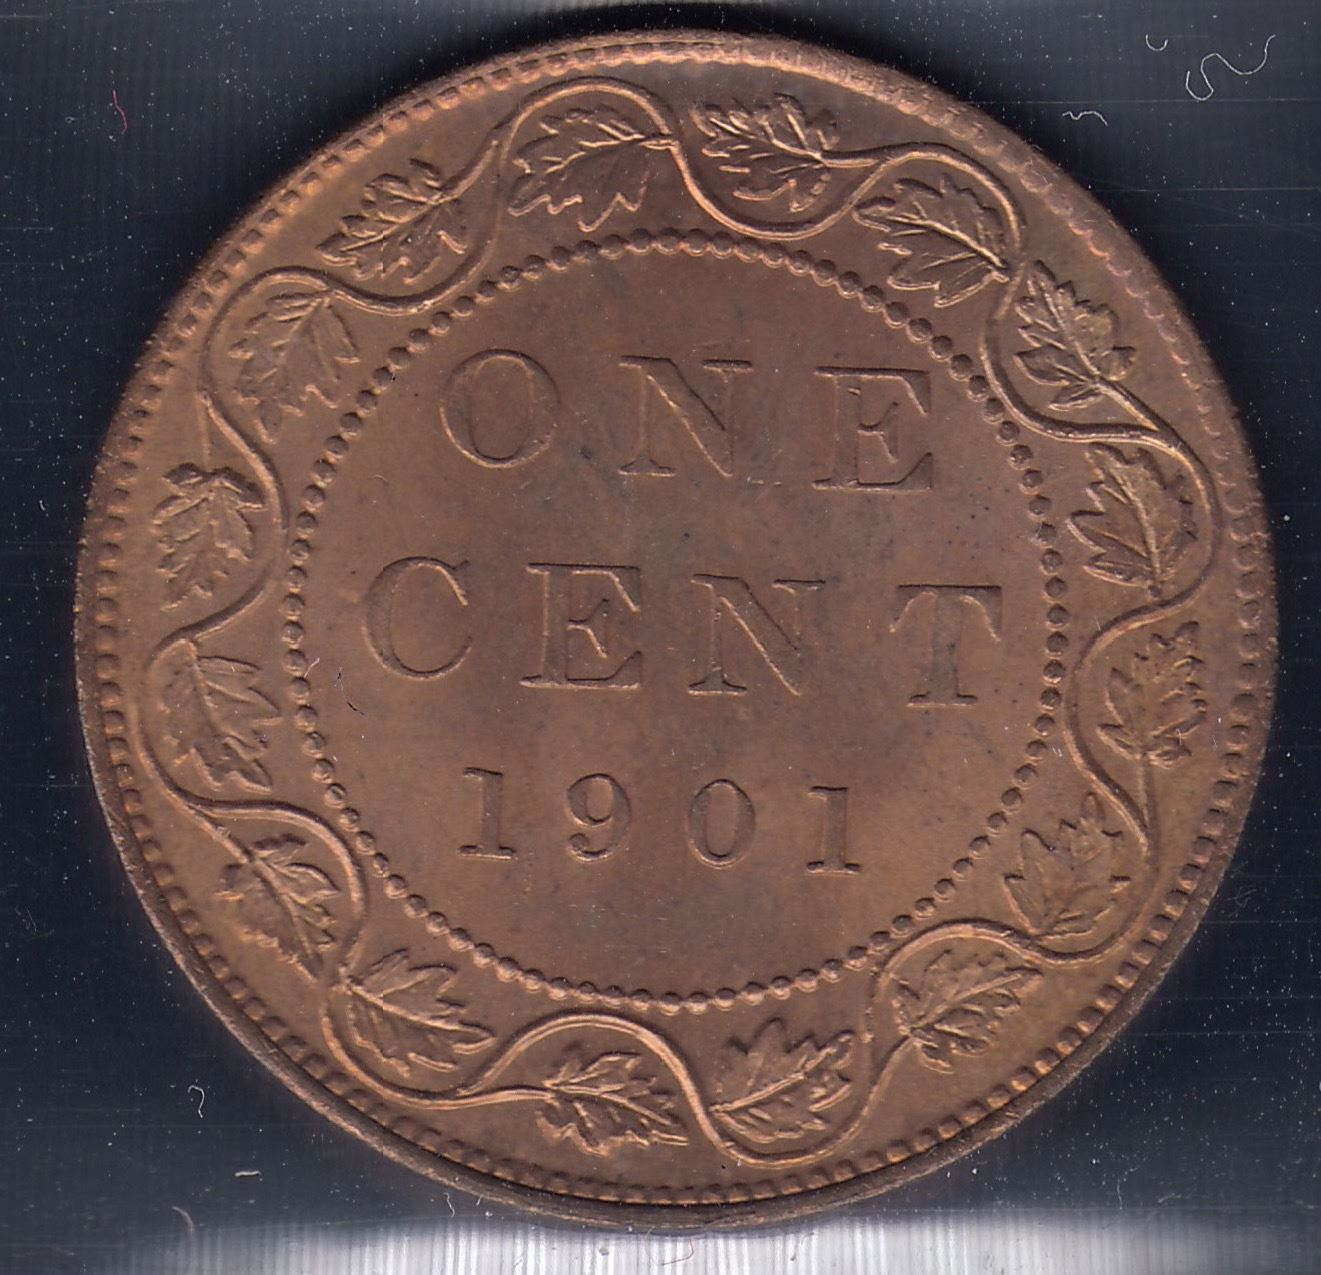 1901 one cent coin value